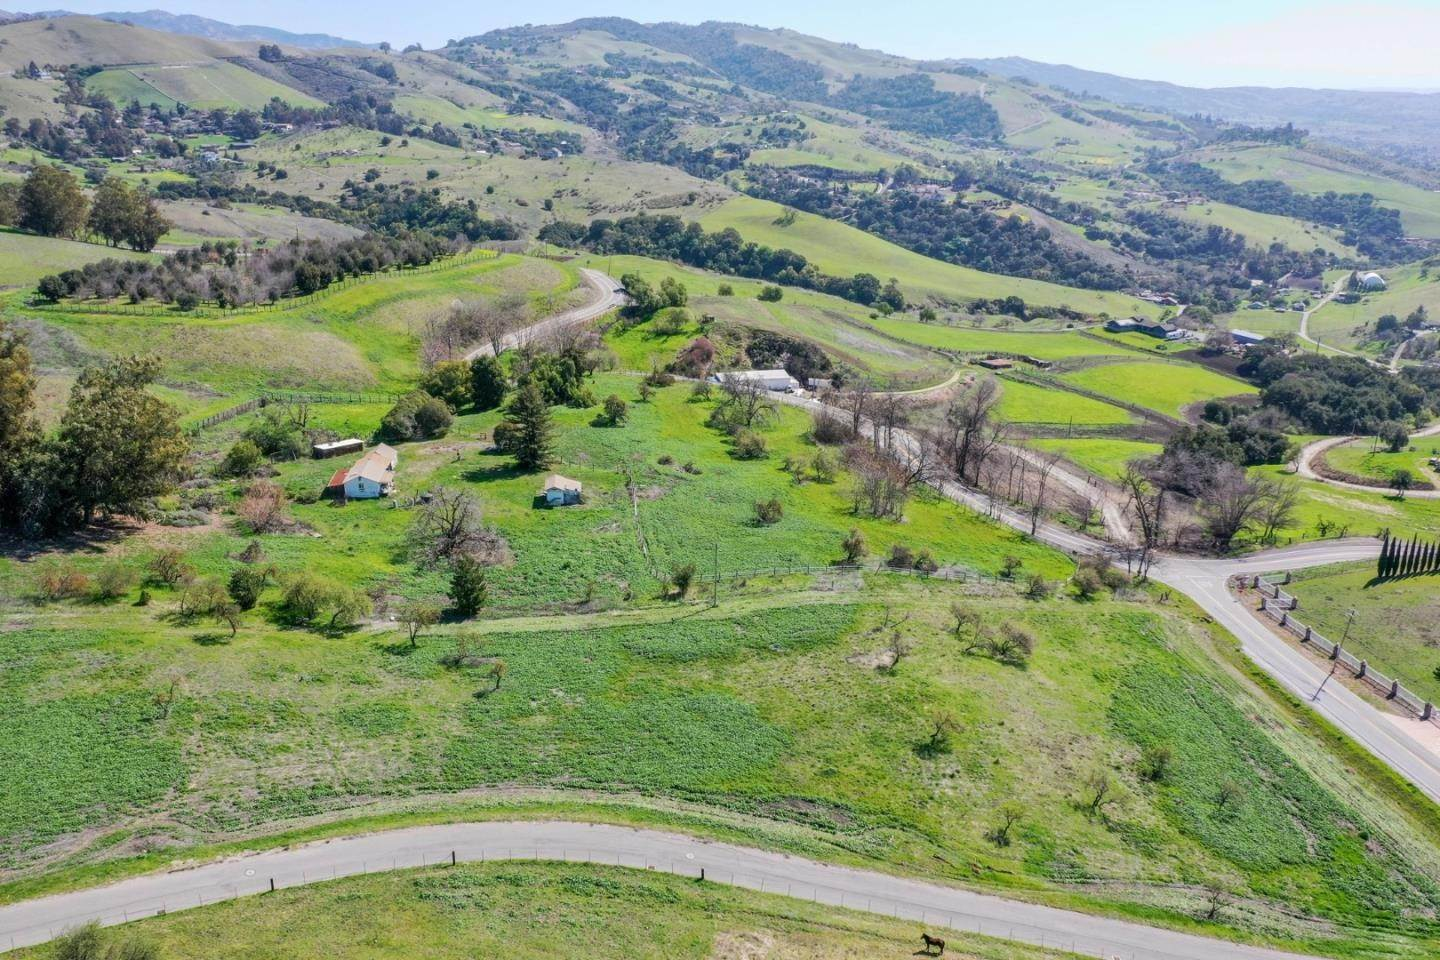 Land for Sale at 12900 Mount Hamilton Road San Jose, California 95127 United States